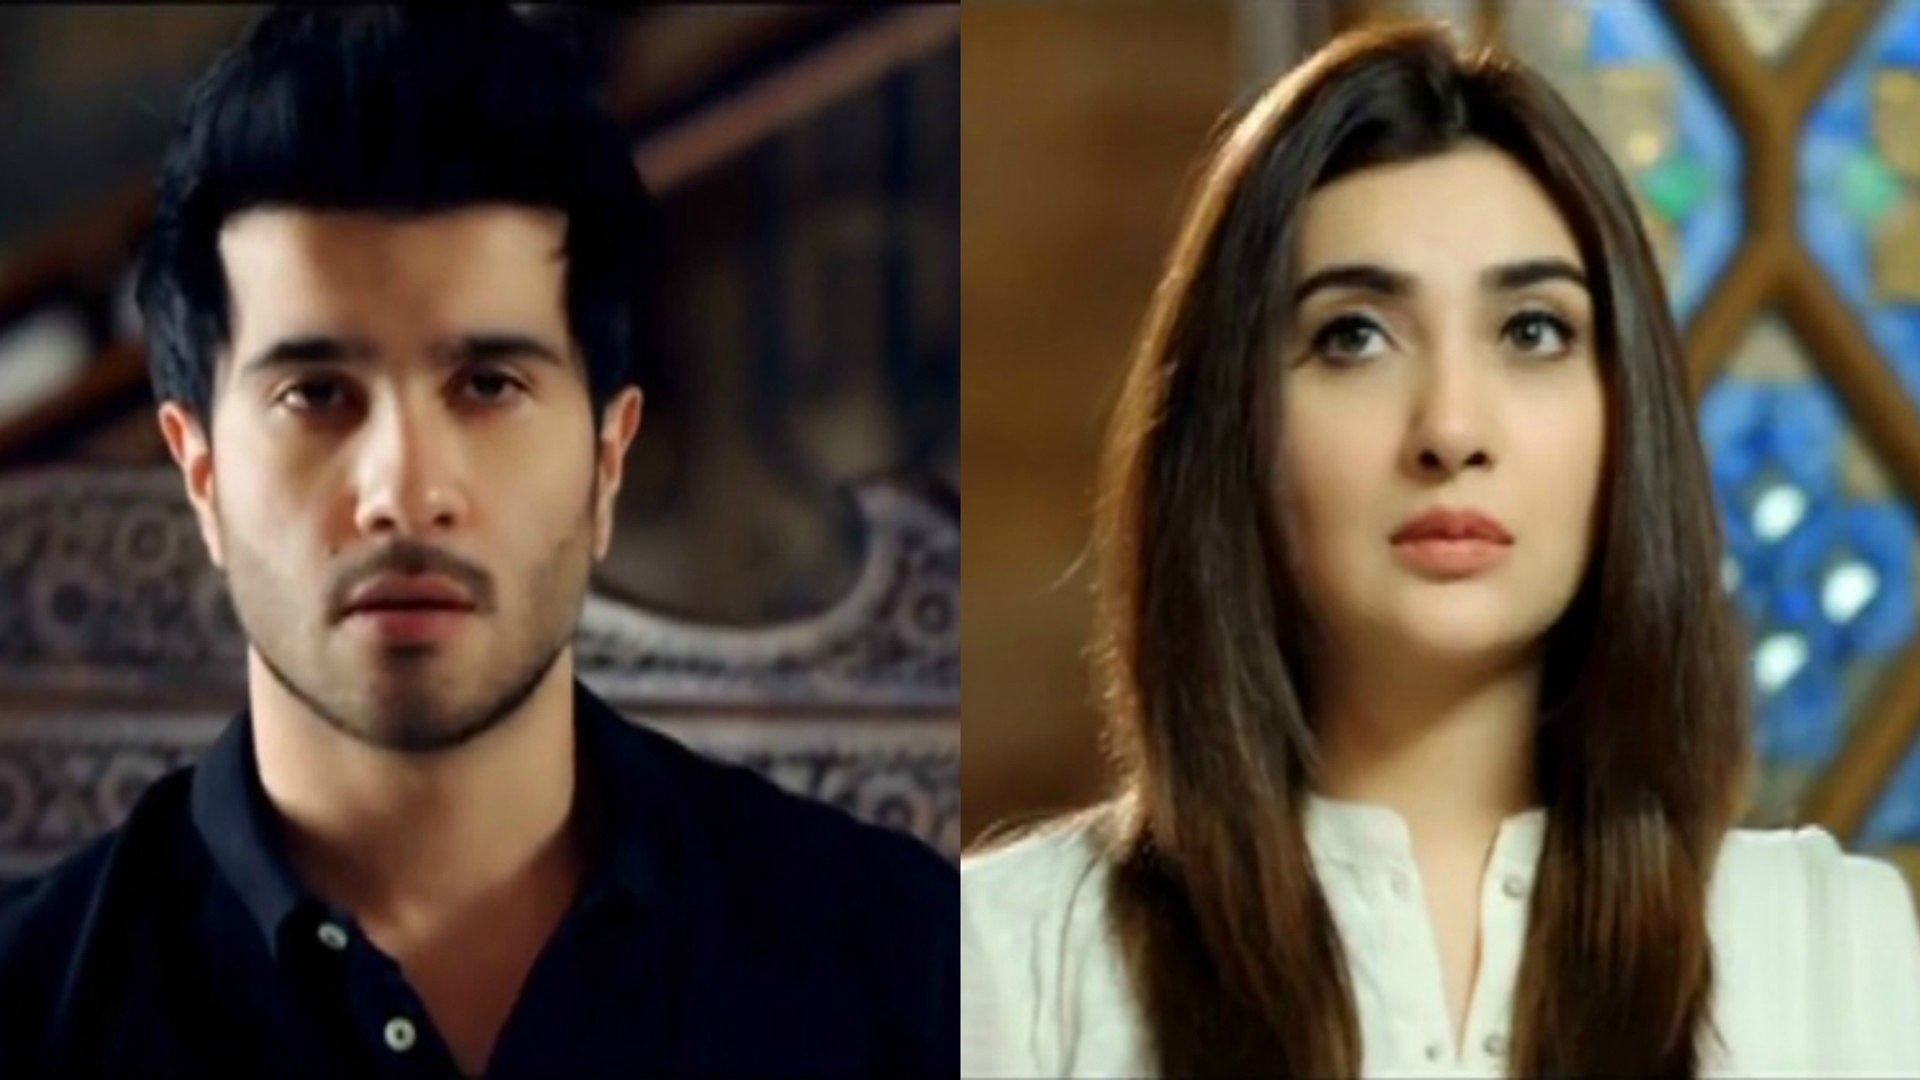 Woh Aik Pal Ost Title Song On Hum Tv Video Dailymotion